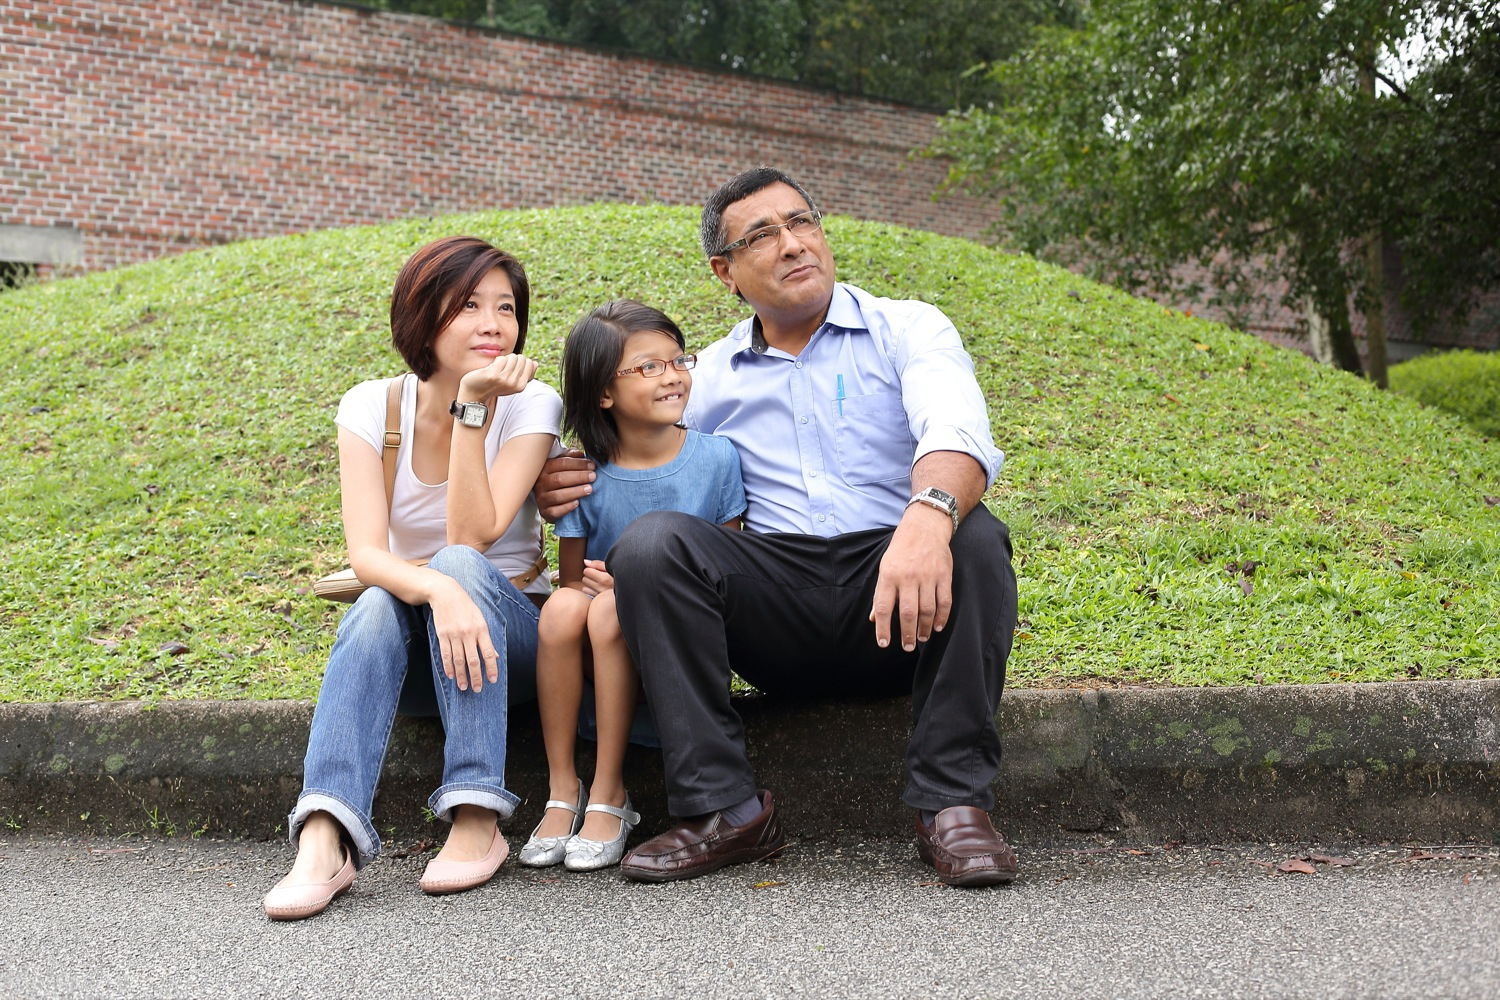 Mike Singh's family photo shoot at KLPAC